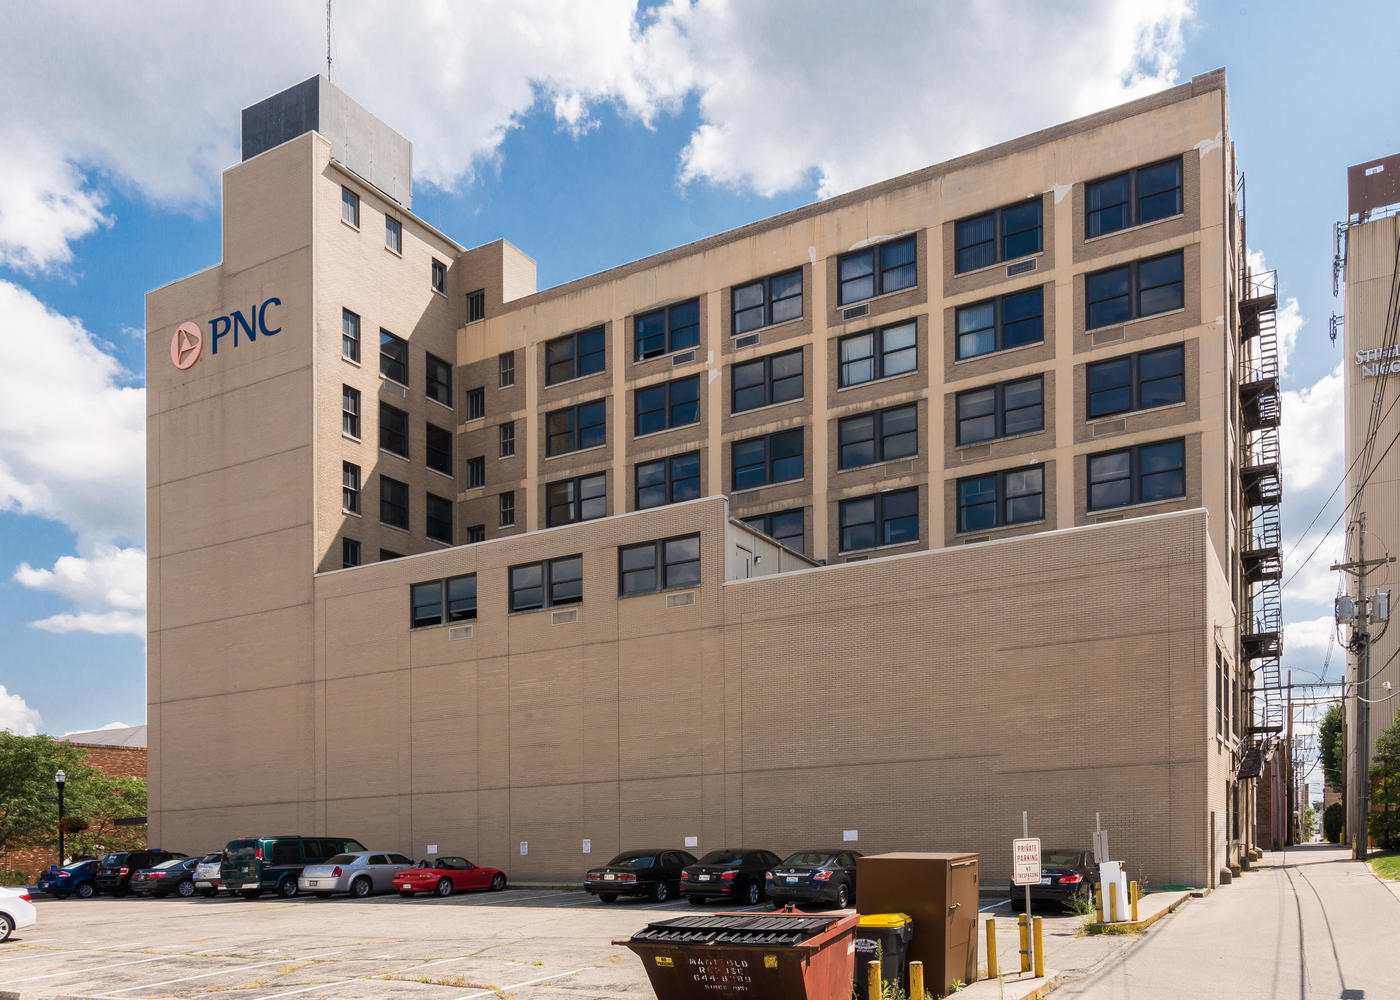 Anderson, IN - The PNC Building